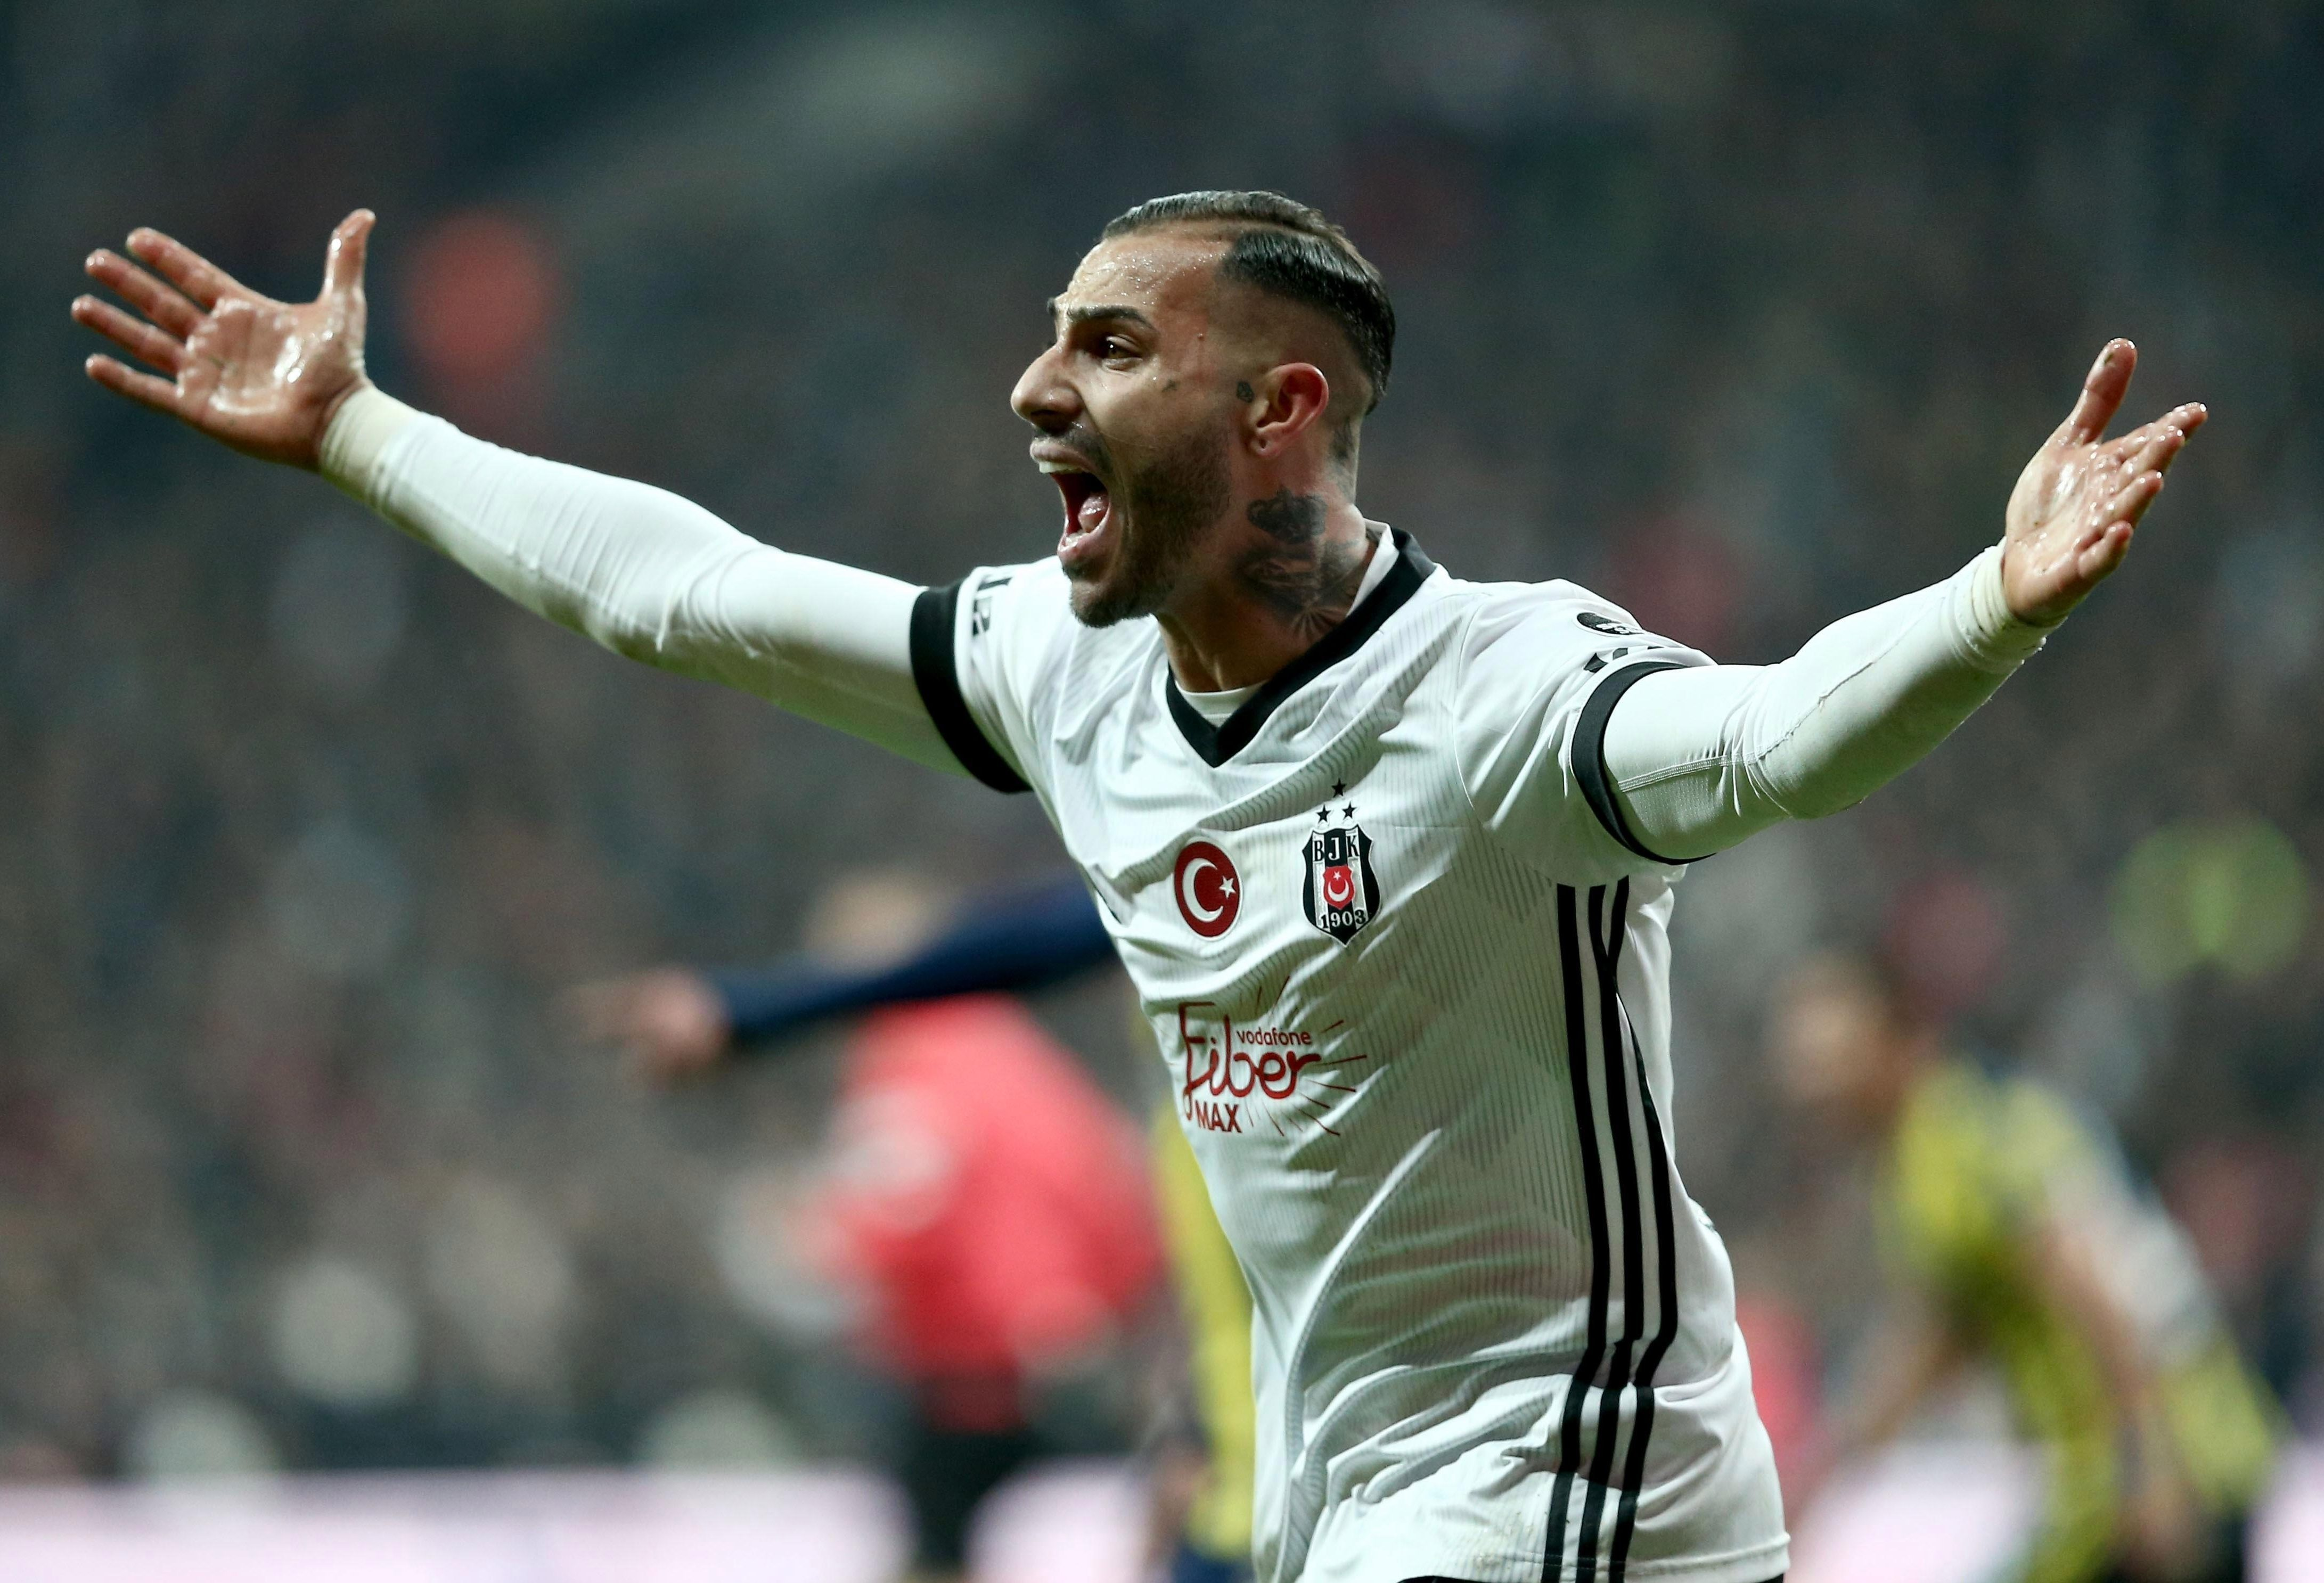 Besiktas vs Galatasaray: Live stream, TV channel, team news, kick off time for huge Istanbul derby